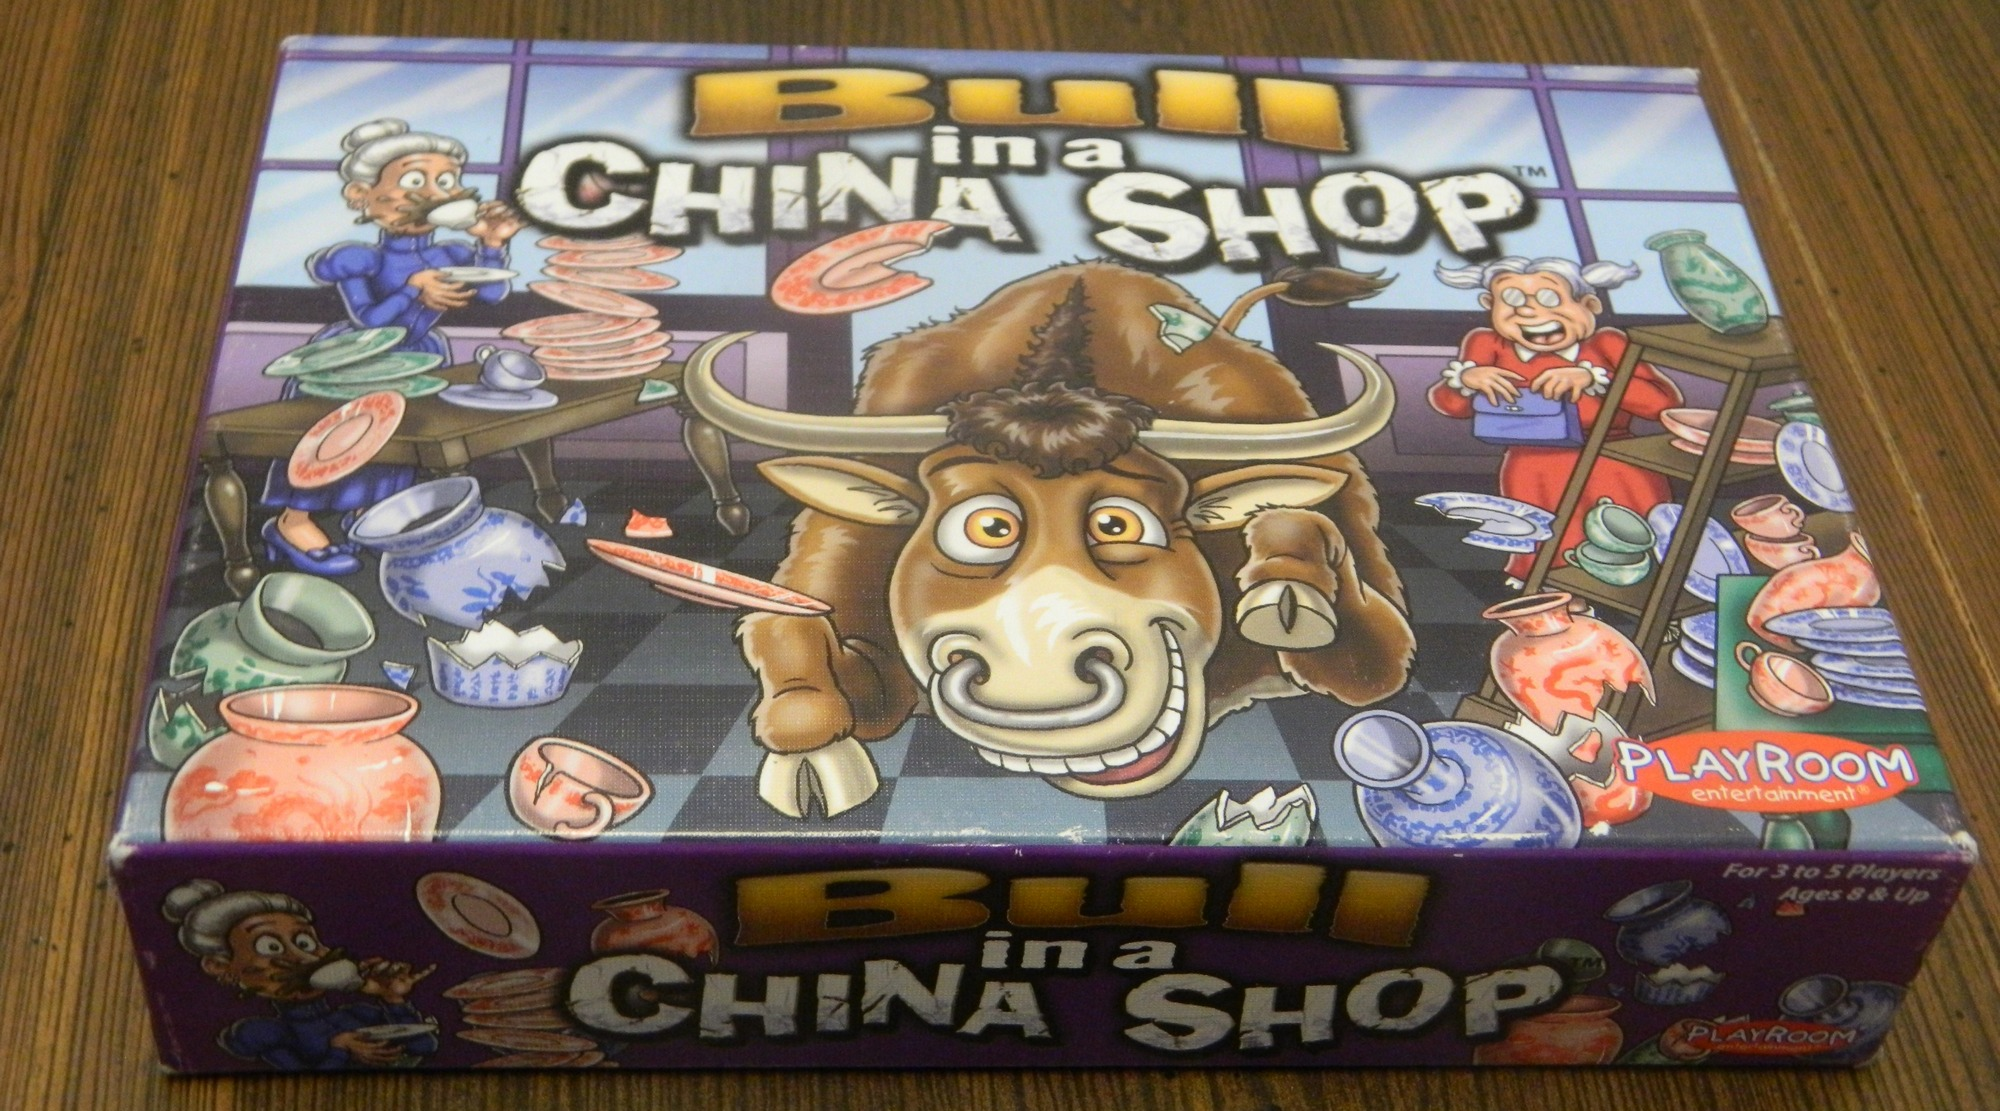 Bull in a China Shop Box